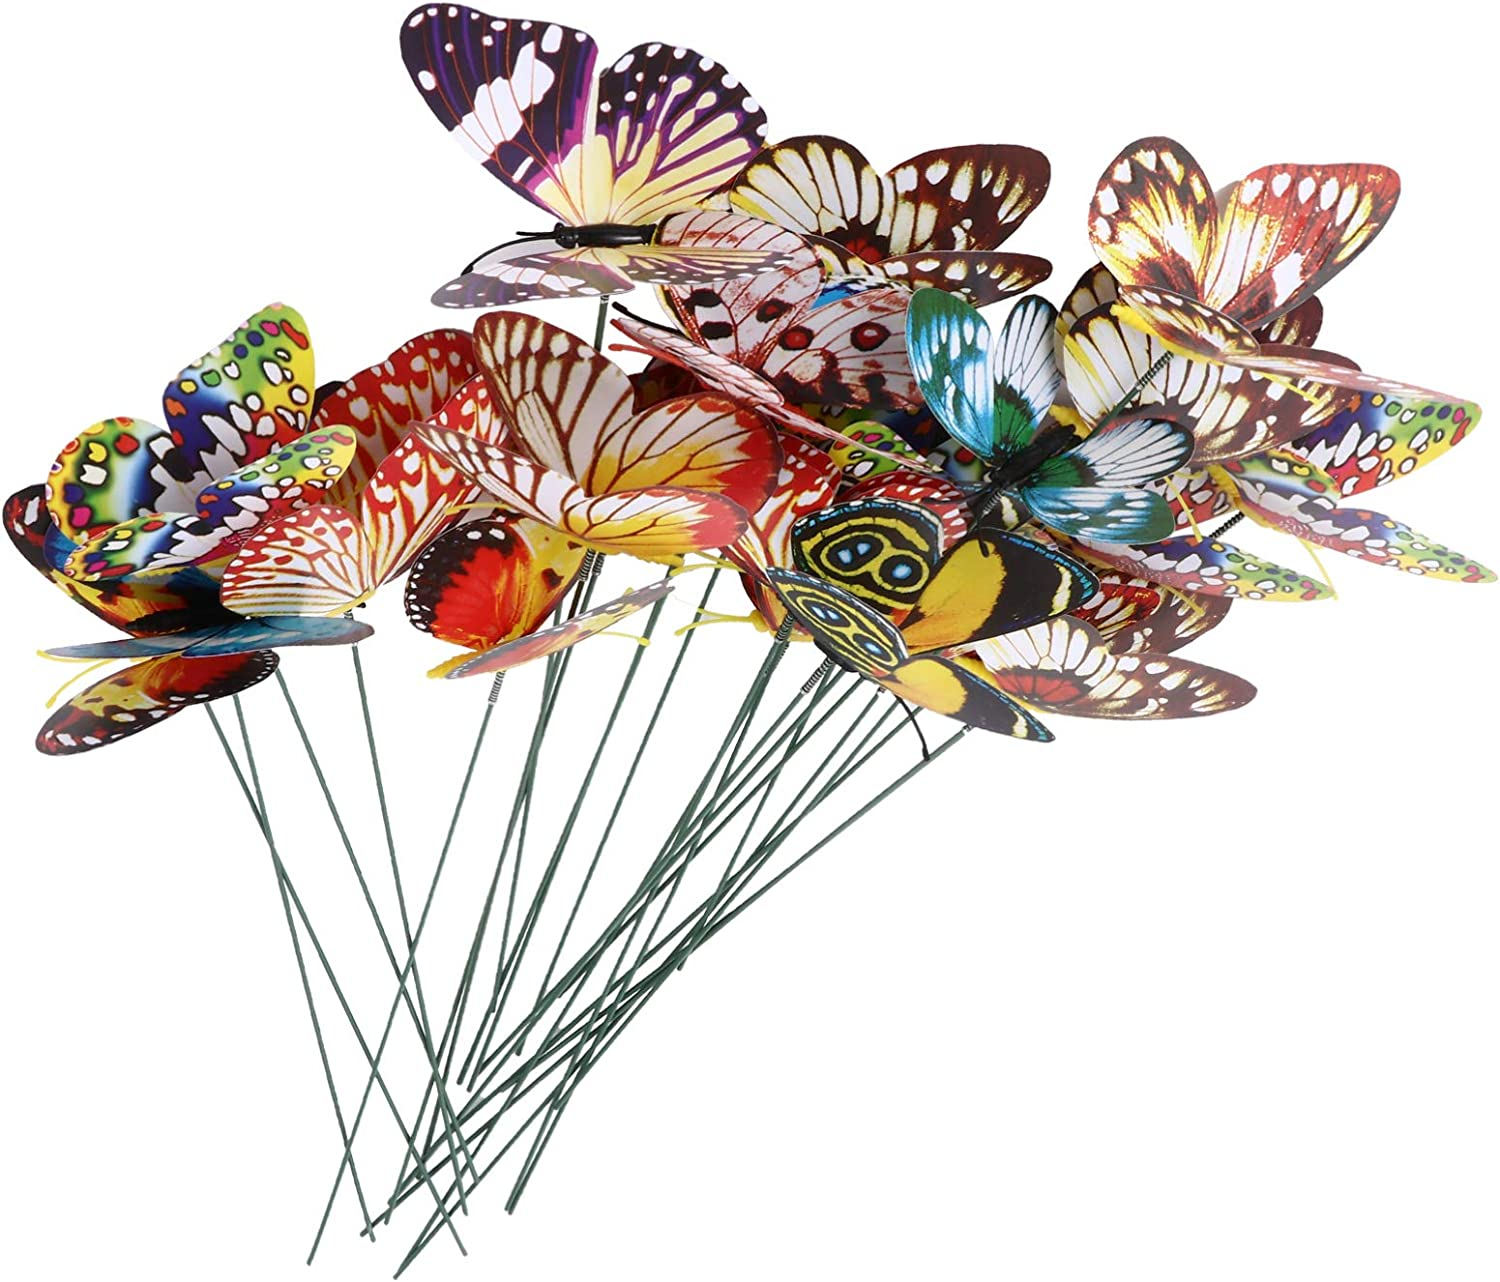 IMIKEYA 24pcs Butterfly Garden Stakes Decor Glow in The Dark Metal Yard Art Indoor Outdoor Lawn Pathway Patio Ornaments